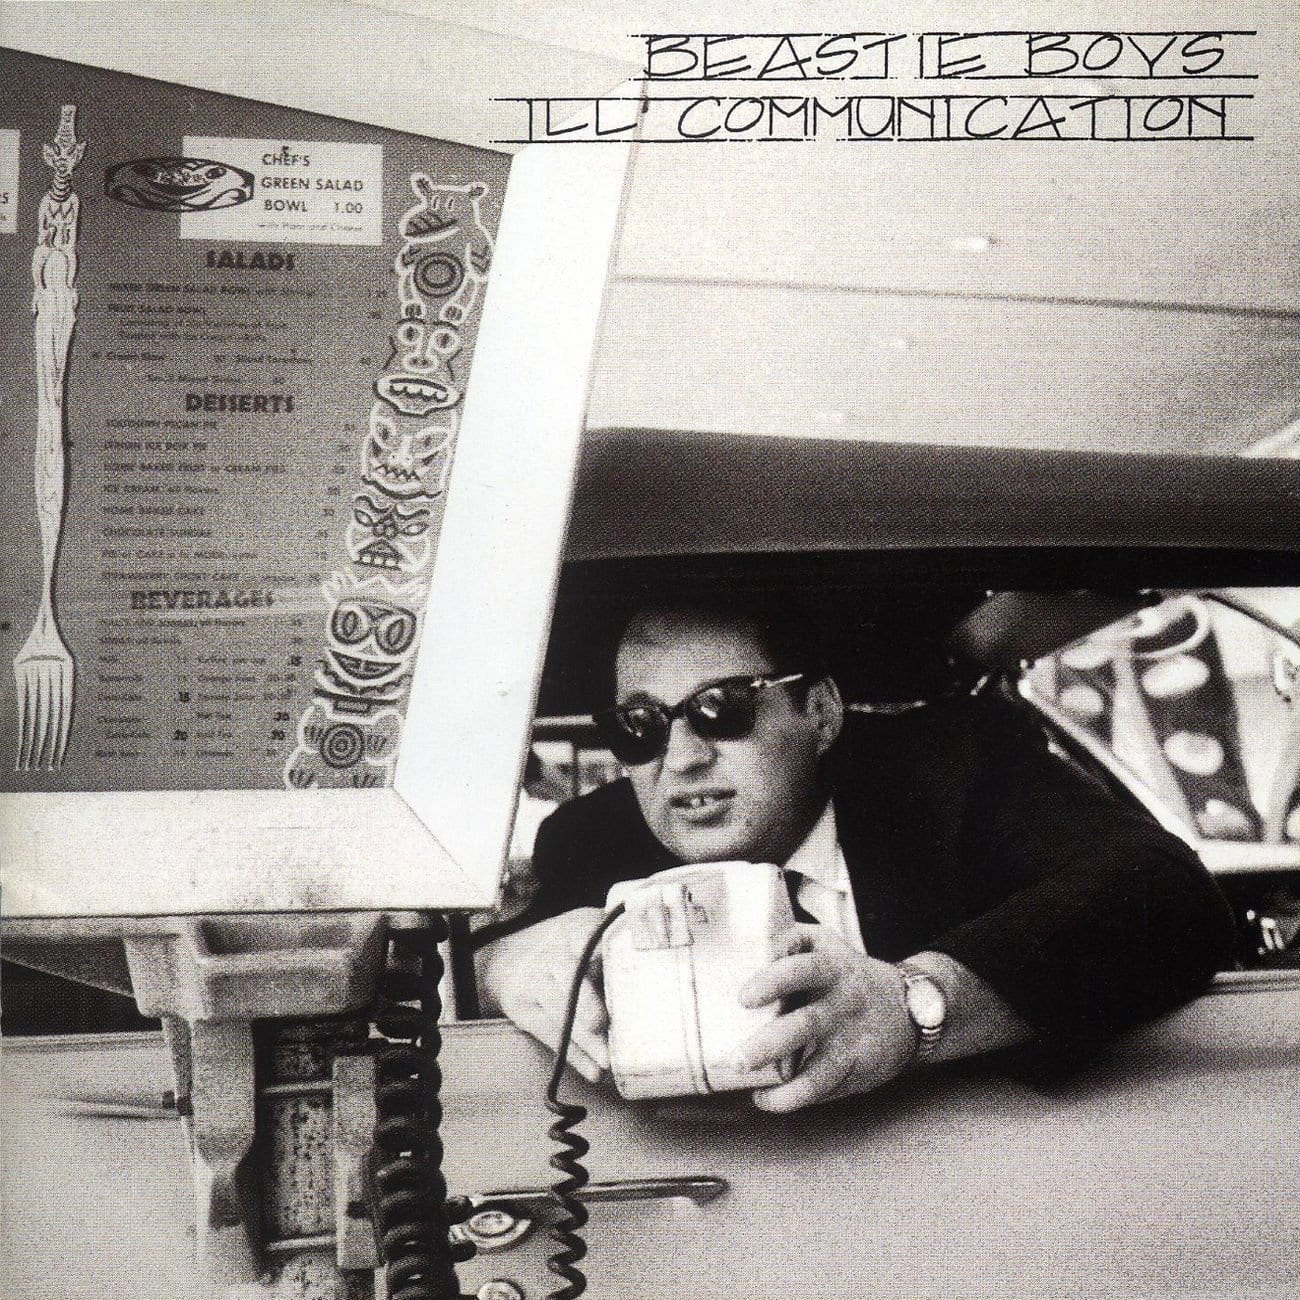 The cover art for Ill Communication by The Beastie Boys.